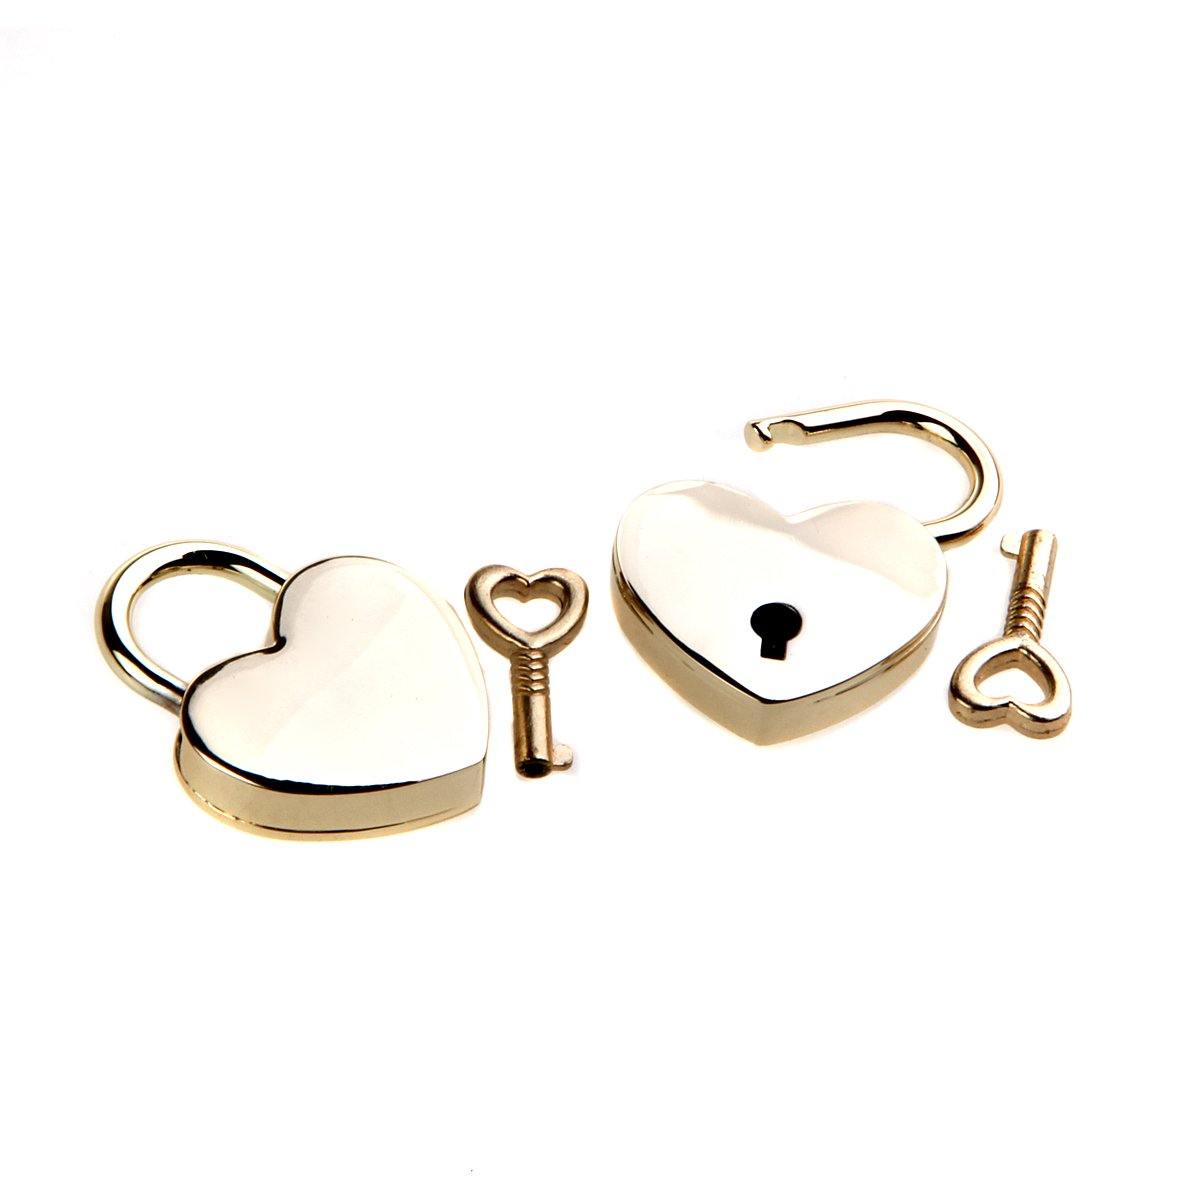 Sealike Cute Mini Love Heart Padlock and Key for Valentines Day Gift and Wedding Favor with Stylus